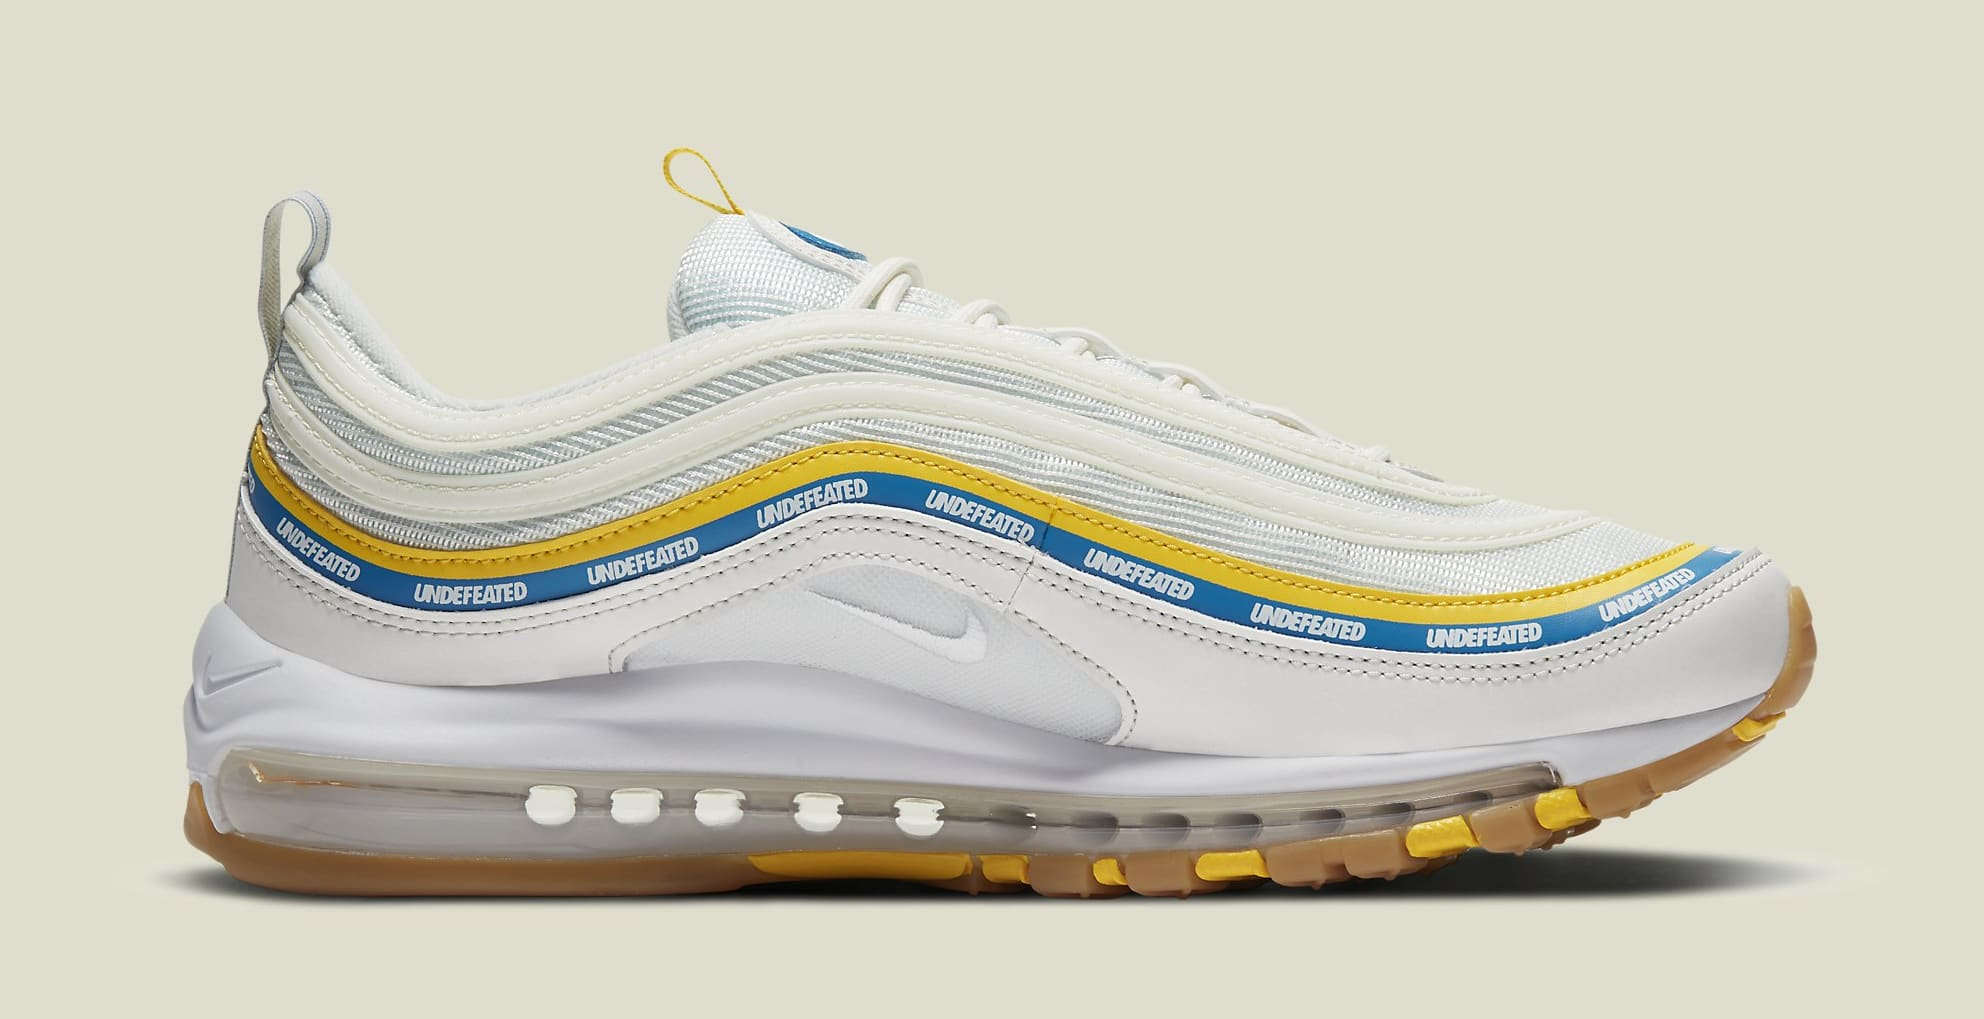 Undefeated x Nike Air Max 97 'Sail' DC4830-100 Medial